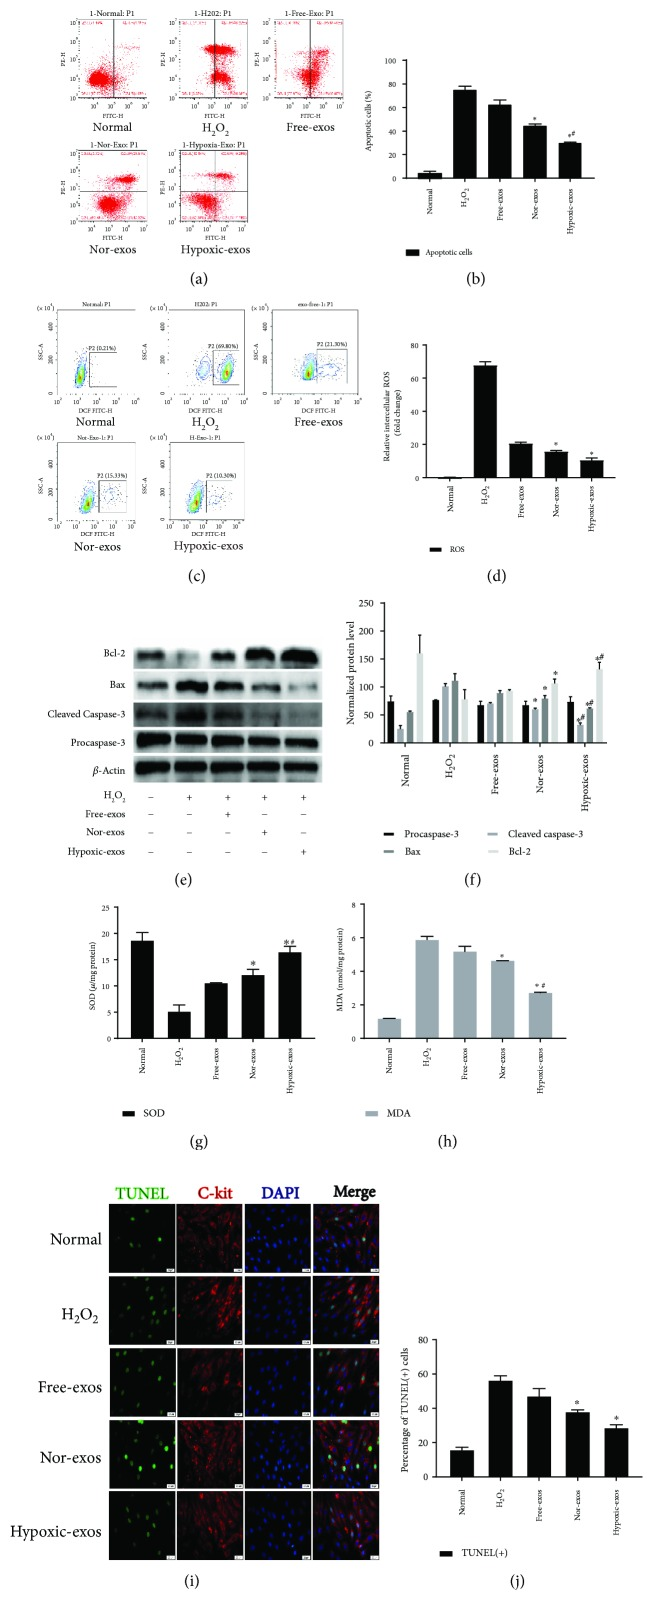 Exosomes released from hypoxia-pretreated BMSCs protect CSCs from oxidative stress injury. CSCs cultured with 100 μ M H 2 O 2 were pretreated with BMSC-exos (400 μ g/ml) for 24 h and then subjected to analysis. (a) Representative dot plots of cell apoptosis after Annexin V/PI dual staining are shown. The left upper quadrant (% gated) shows necrotic cells (Annexin V−/PI+); the upper right quadrant (% gated) shows late apoptotic cells (Annexin V+/PI+); the left lower quadrant (% gated) shows live cells (Annexin V−/PI−); and the right lower quadrant (% gated) shows early apoptotic cells (Annexin V+/PI−). These cells were measured for comparison. (b) The percentage of apoptotic cells represents both early and late apoptotic cells. Compared with the H 2 O 2 -treated group, the BMSC-exo-treated group displayed a decreased percentage of apoptotic cells. In addition, Hypoxic-exos more markedly decreased apoptosis than did Nor-exos or Free-exos. (c) The intracellular ROS level was determined by FCM. The P2 percentage indicates the proportion of cells with increased ROS production, with signals above background 2′,7′-dichlorofluorescein (DCF) fluorescence levels. (d) Compared with the H 2 O 2 -treated group, the BMSC-exo-treated group had a significantly decreased intracellular ROS fluorescence intensity. In addition, Hypoxic-exos decreased ROS fluorescence to a greater degree than did Nor-exos or Free-exos. (e and f) The effects of BMSC-exos on cell apoptosis-related genes, such as procaspase-3, cleaved caspase-3, Bax, and Bcl-2 were detected by immunoblotting. Compared with the H 2 O 2 -treated cells, the BMSC-exo-treated cells had substantially decreased levels of cleaved caspase-3 and Bax and increased levels of Bcl-2. Additionally, Hypoxic-exos more markedly affected these protein levels than did Nor-exos. (g and h) Graph represents the SOD and MDA levels in CSCs; compared with H 2 O 2 group, Hypoxic-exos inhibited MDA levels and increased SOD production. (i) Representat